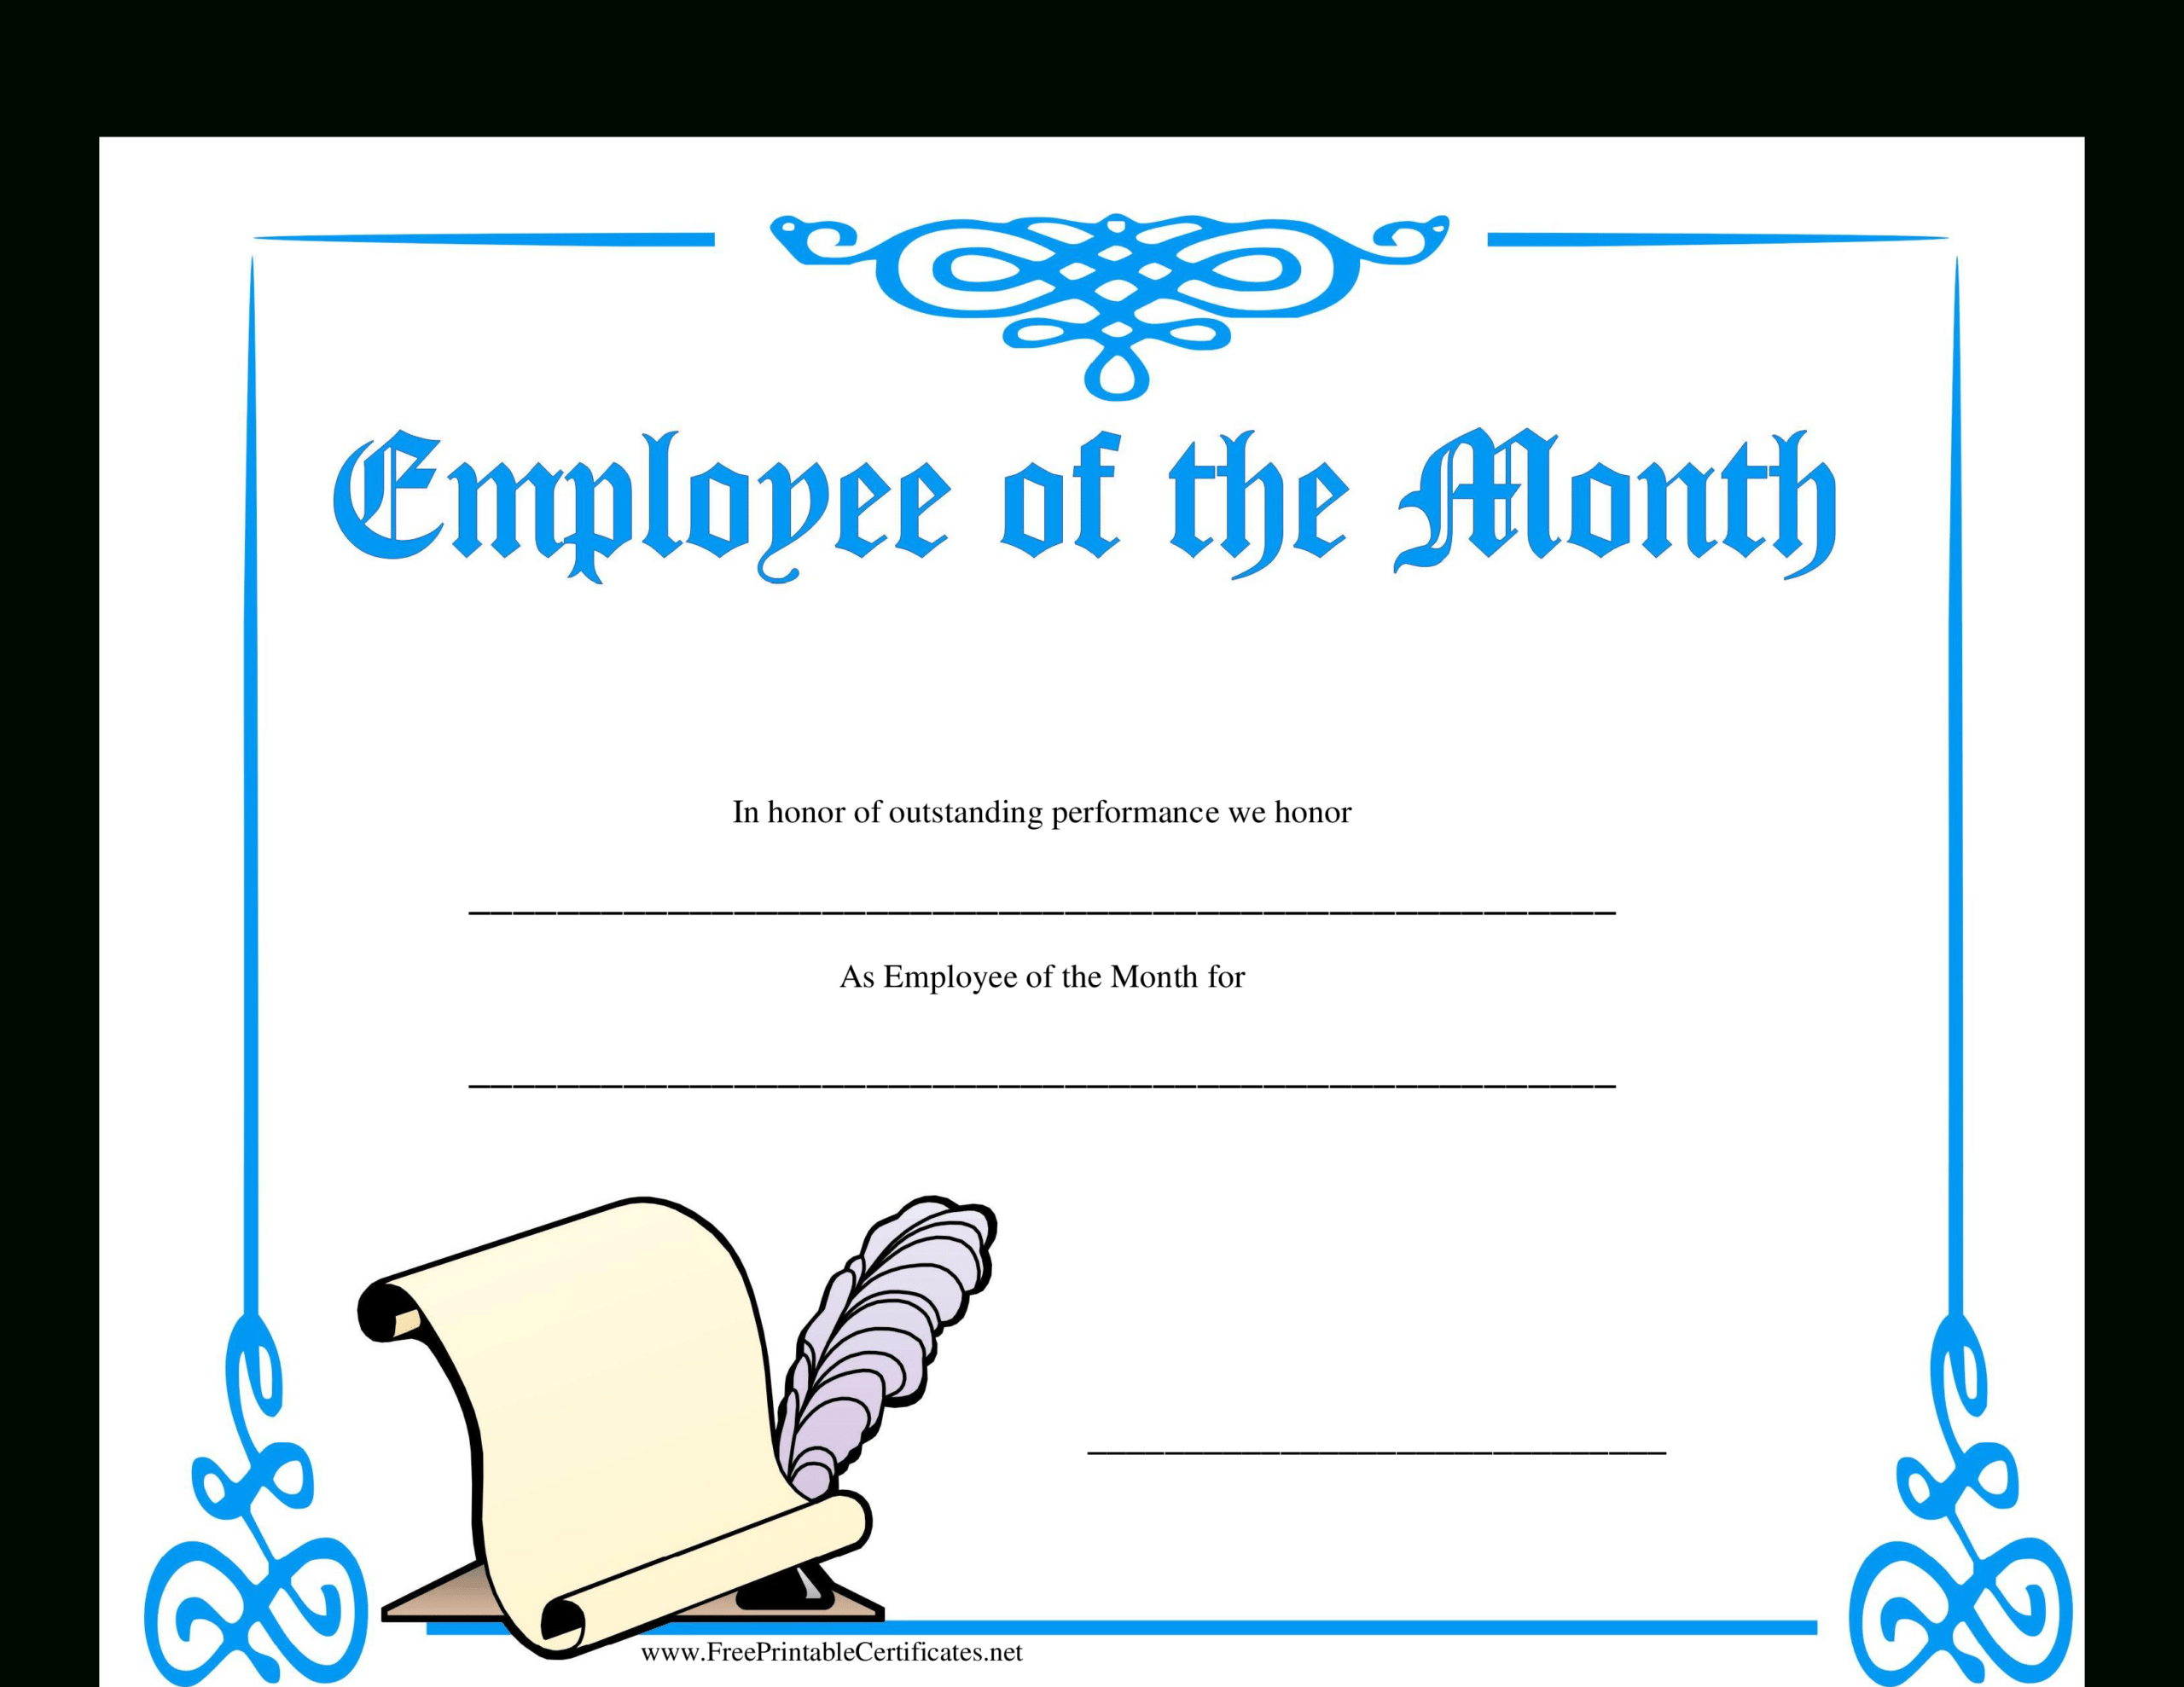 Employee Of The Month Certificate | Templates At For Employee Of The Month Certificate Template With Picture